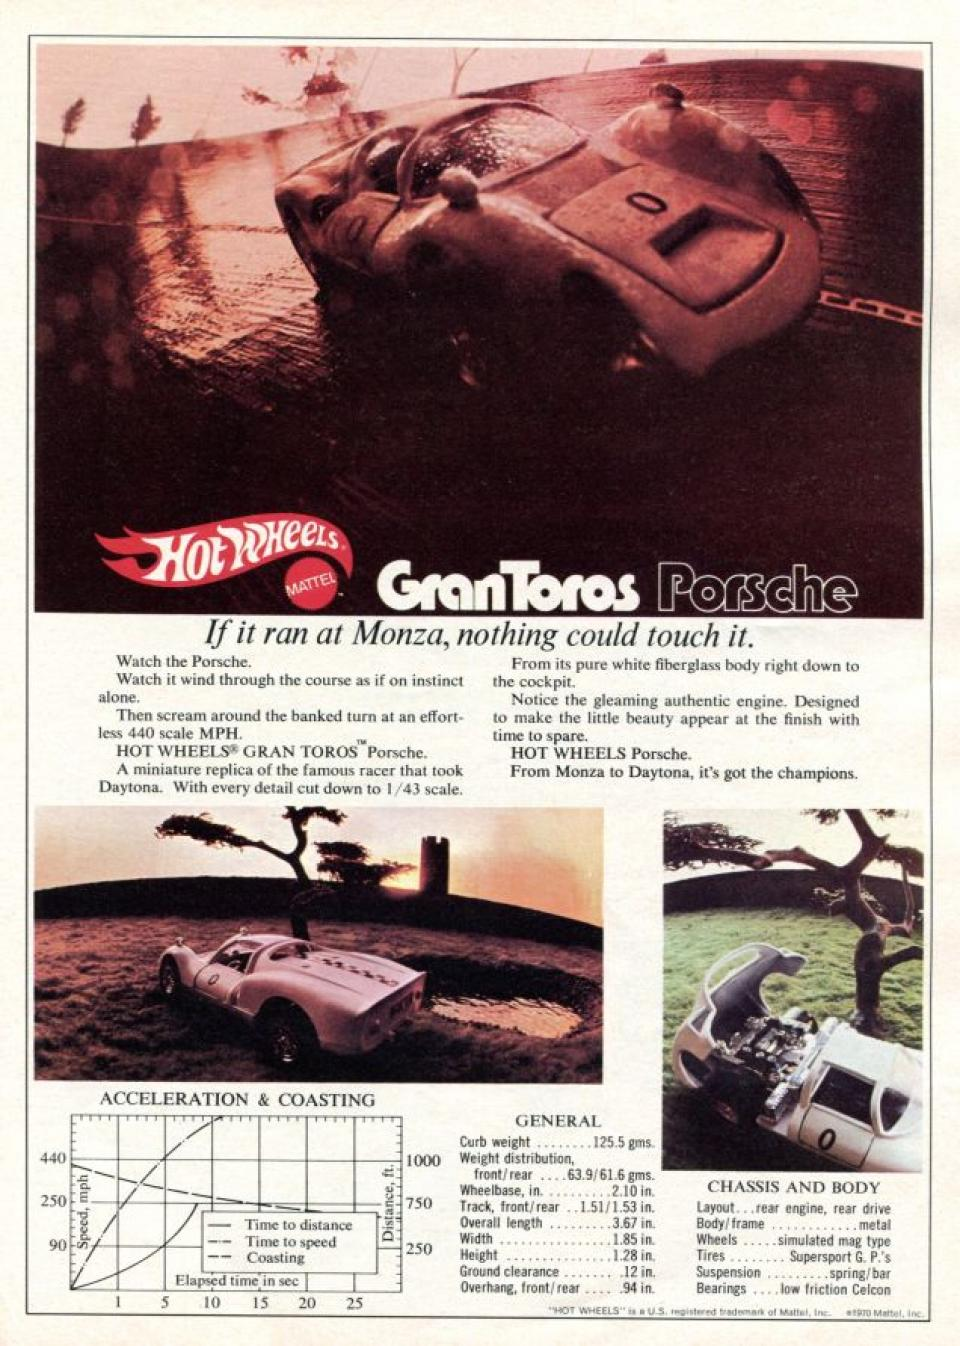 Hot Wheels 1/43 Gran Toros Vintage Ad